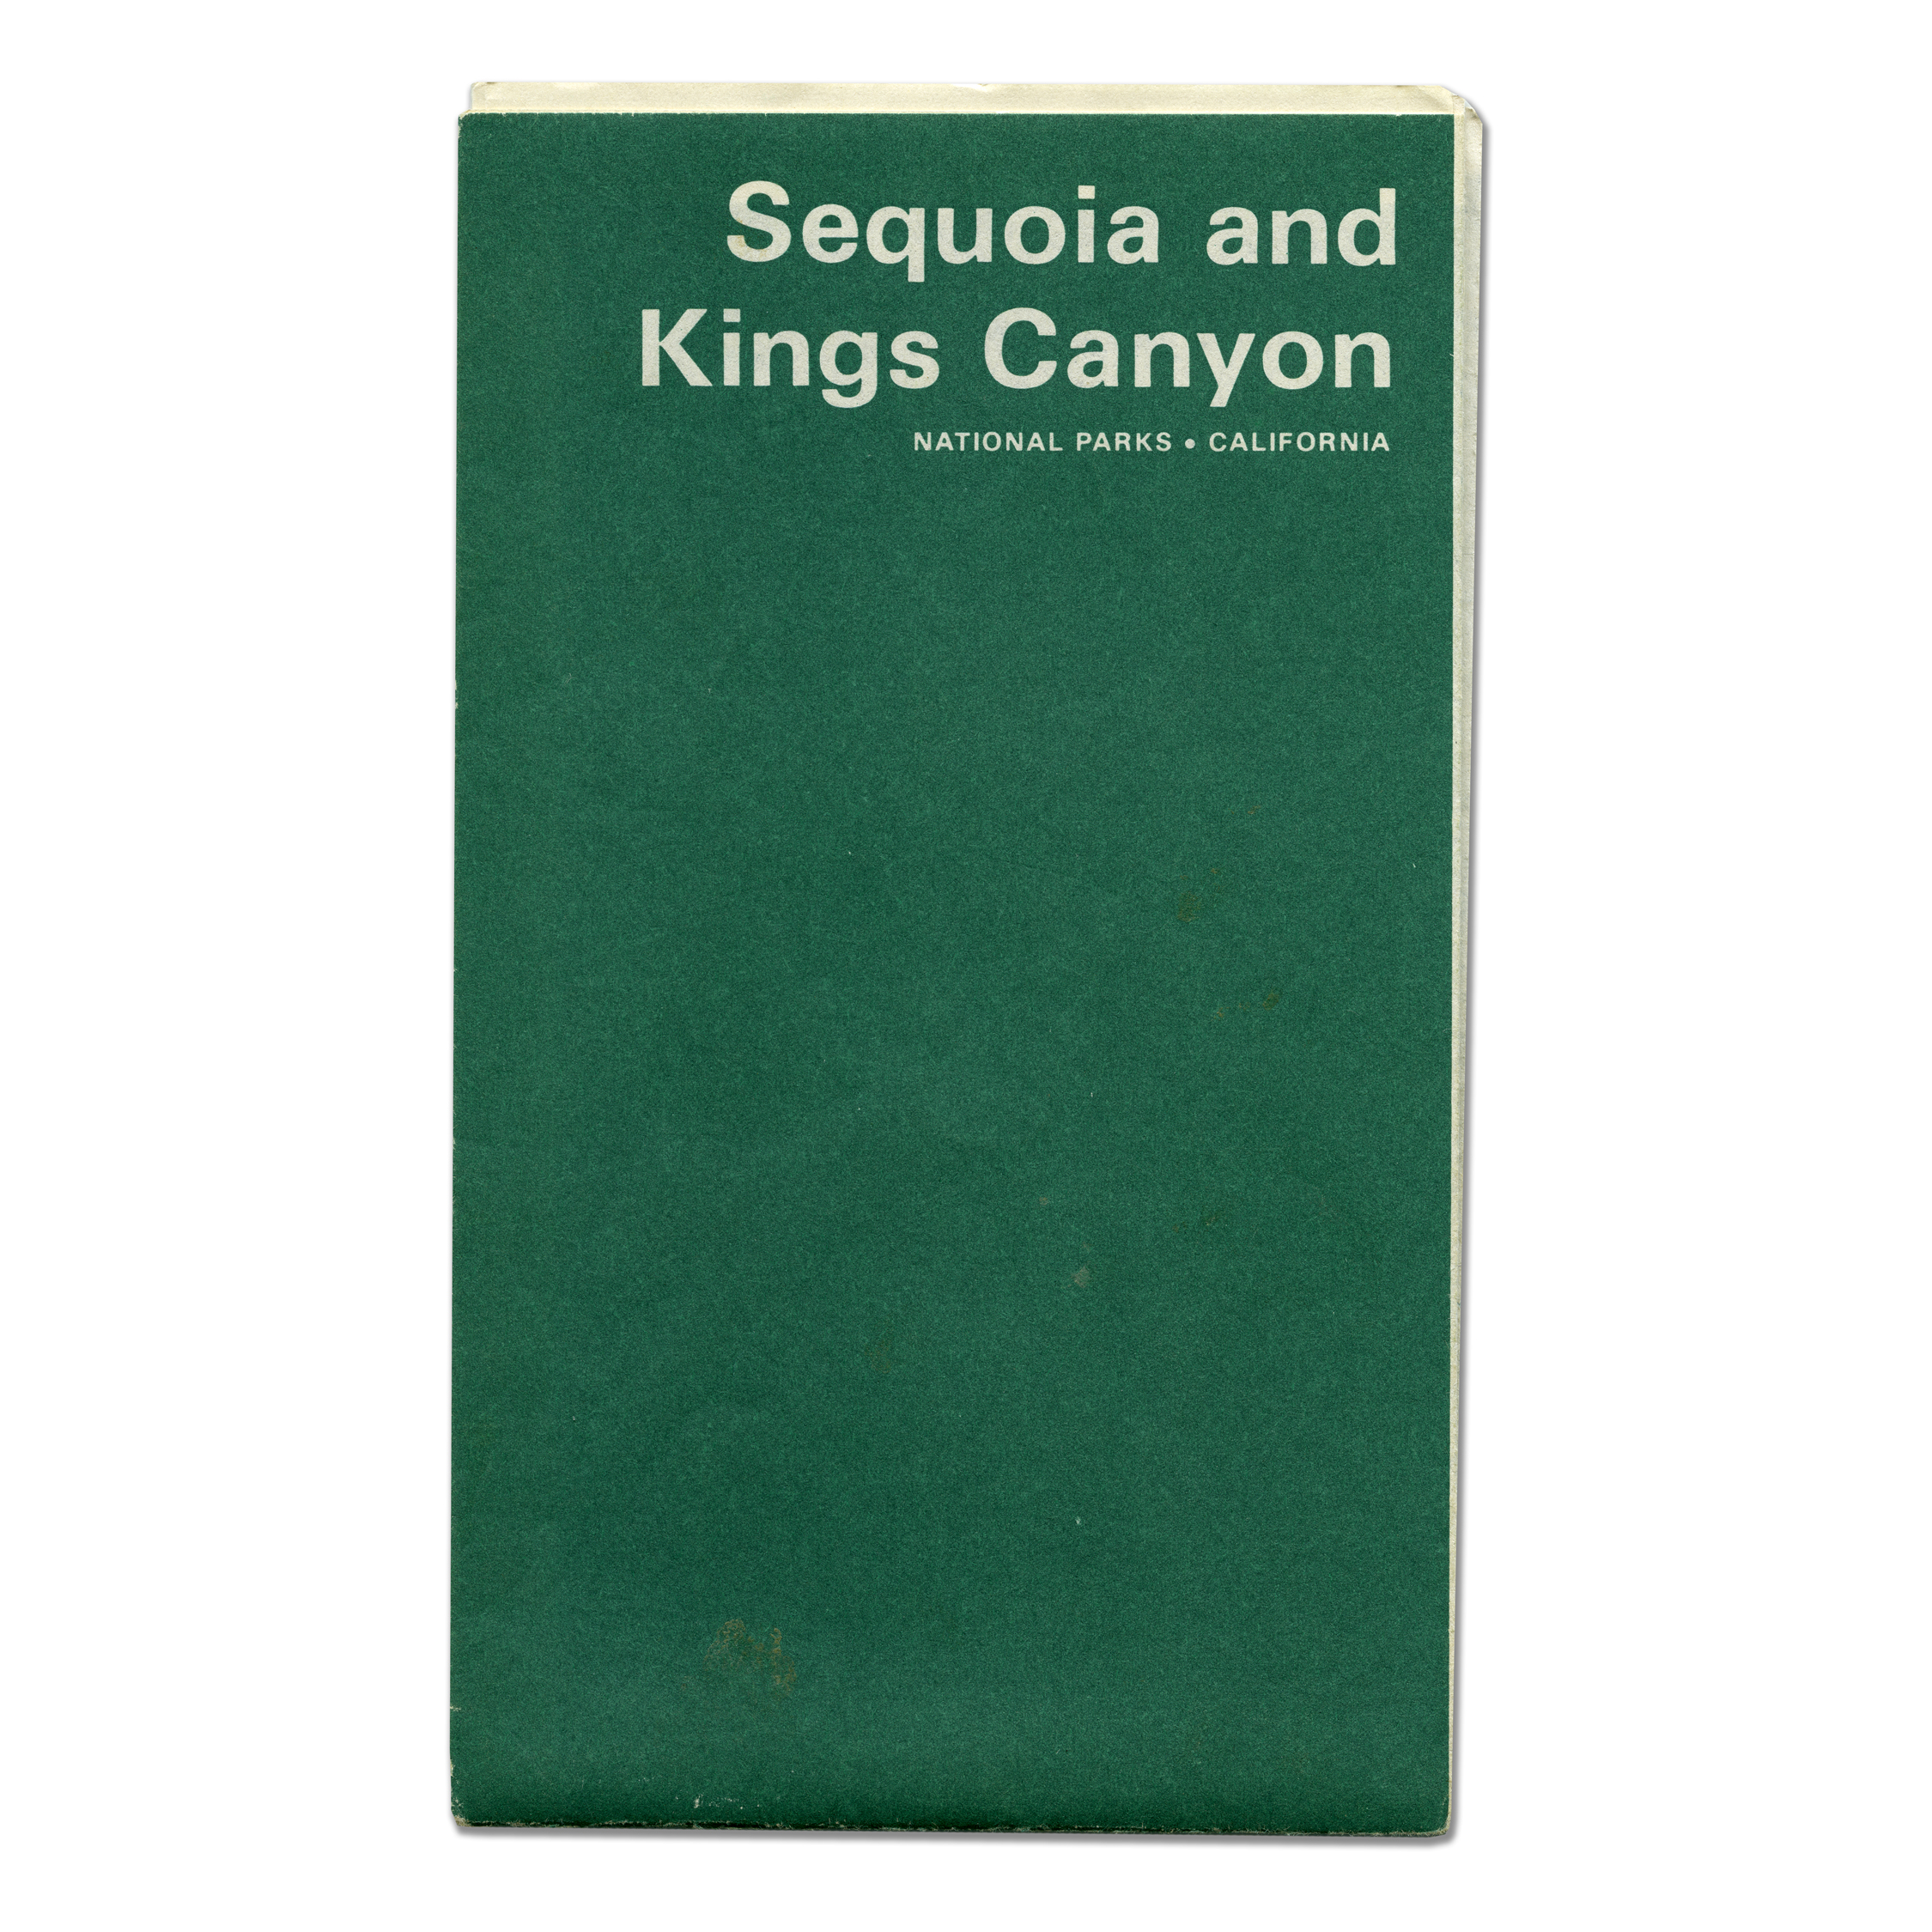 1969_sequoia_and_kings_canyon_national_park_brochure.jpg